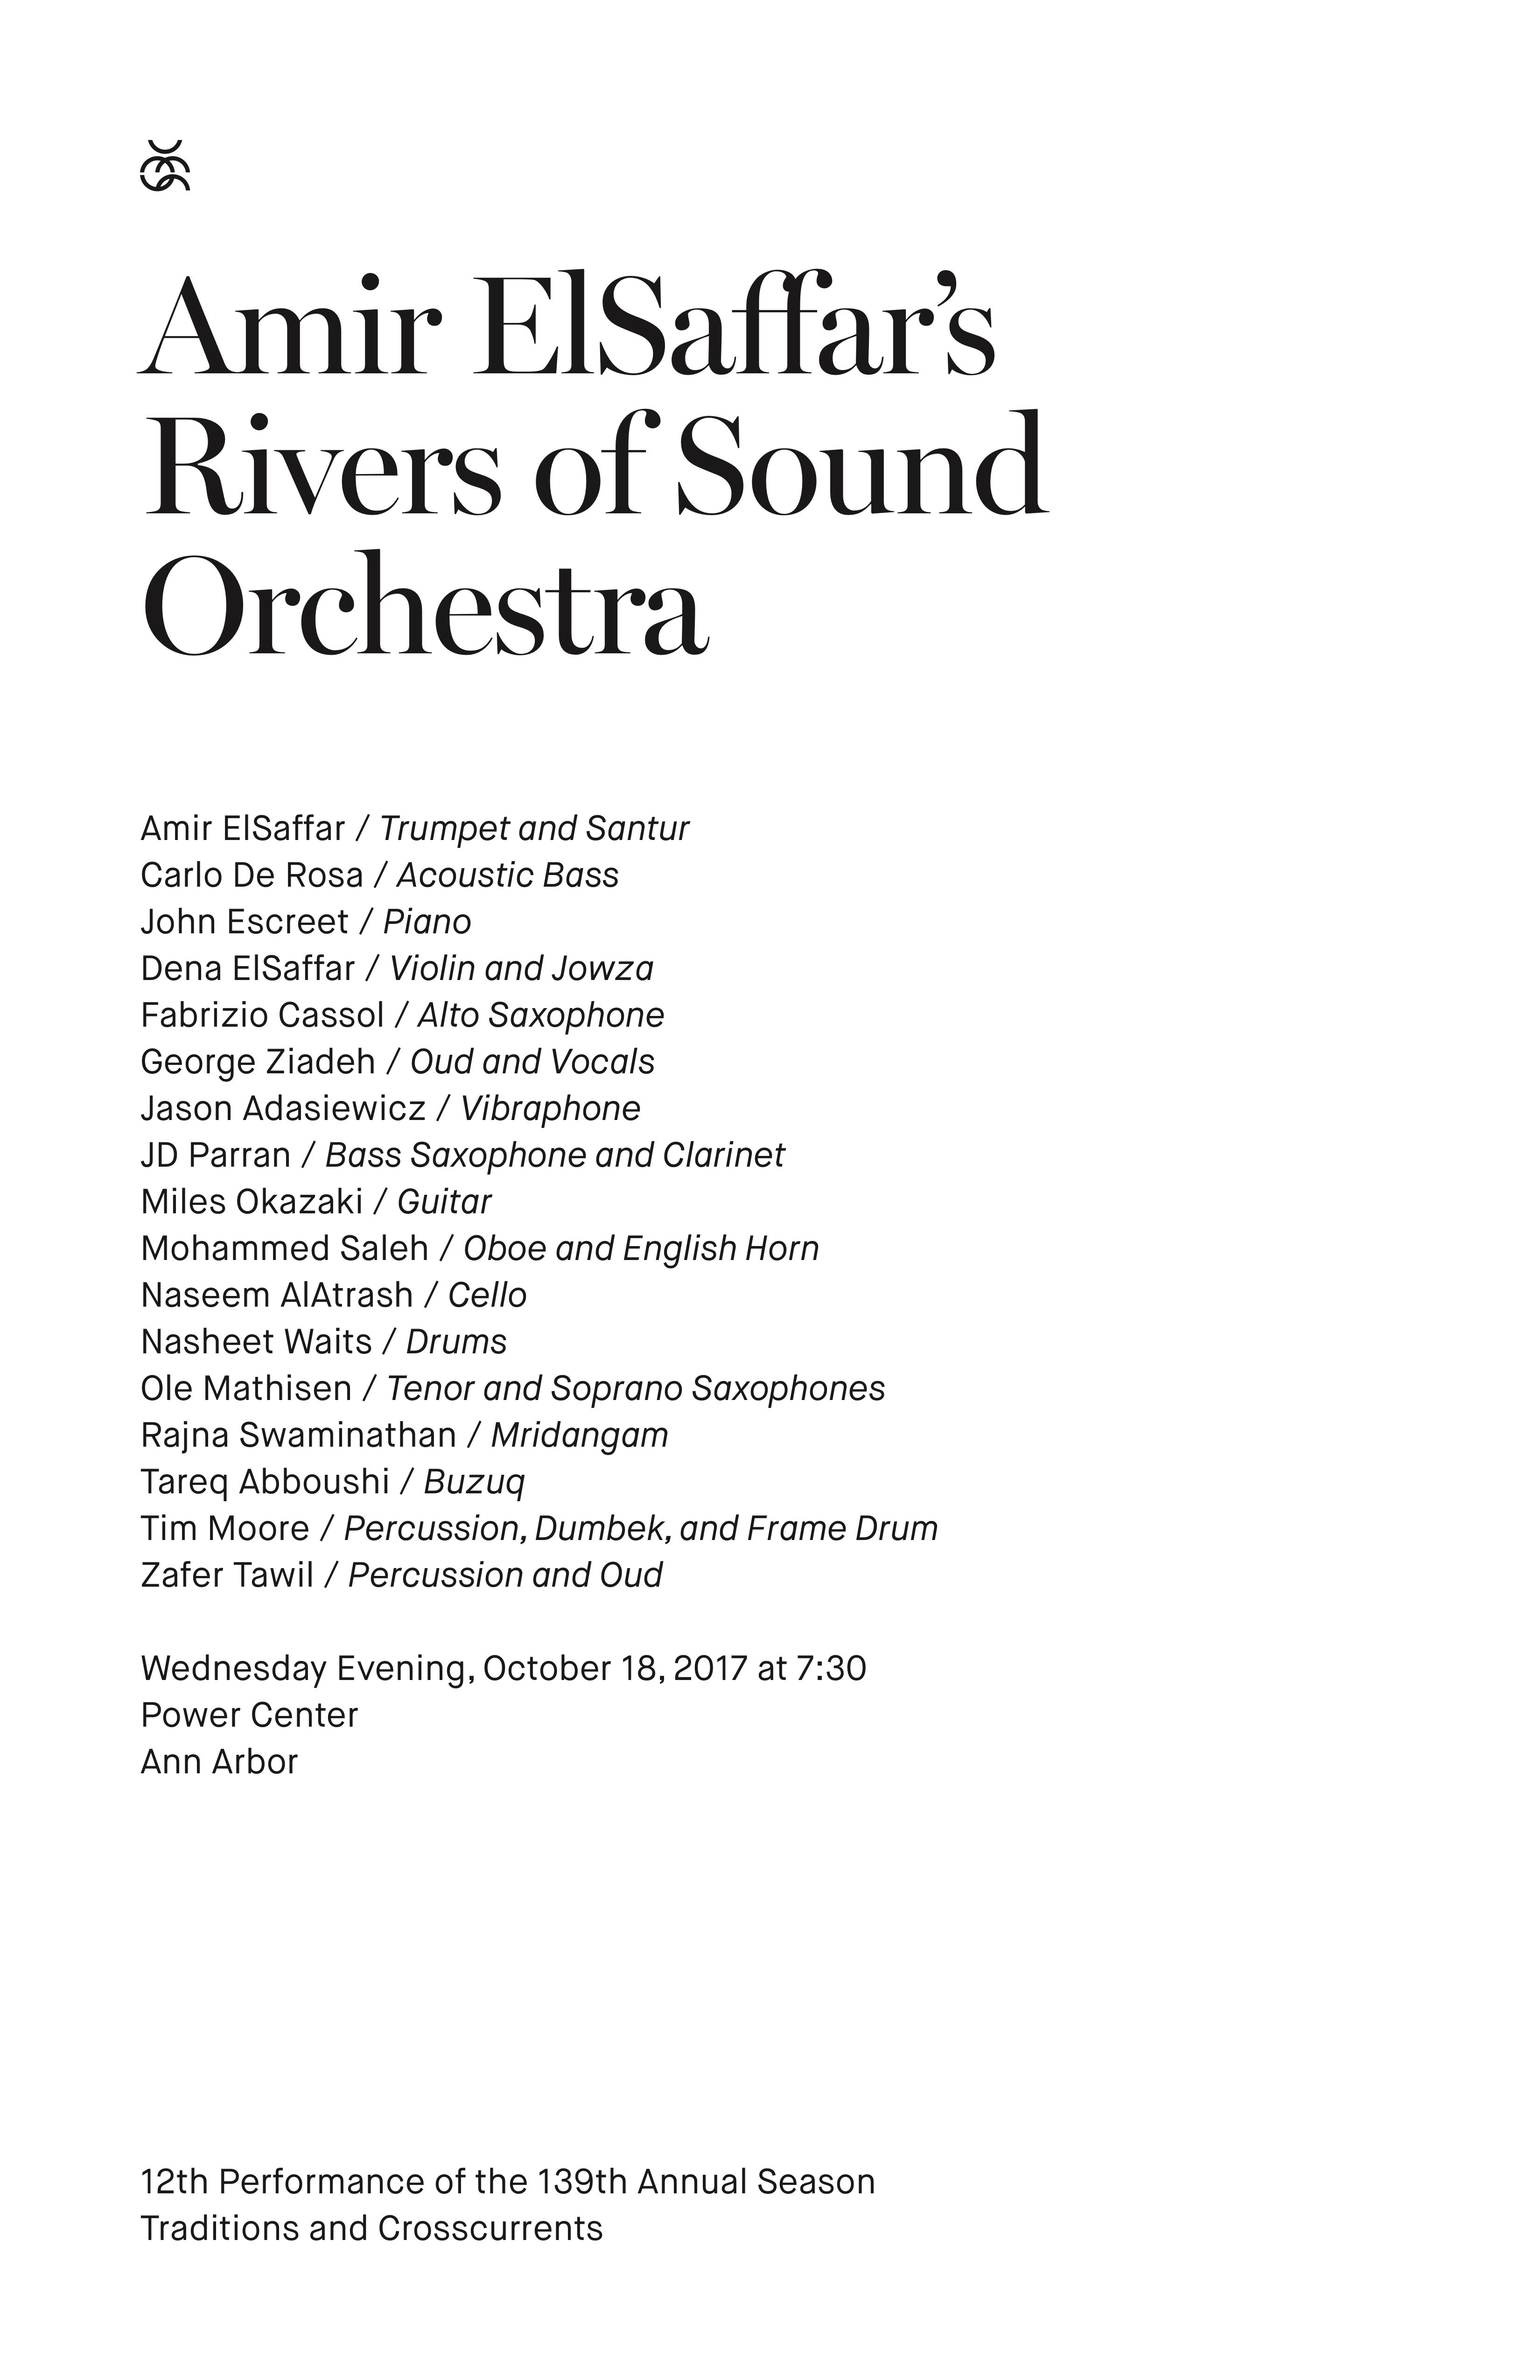 UMS Concert Program, October 18, 2017 - Amir ElSaffar's Rivers of Sound Orchestra image